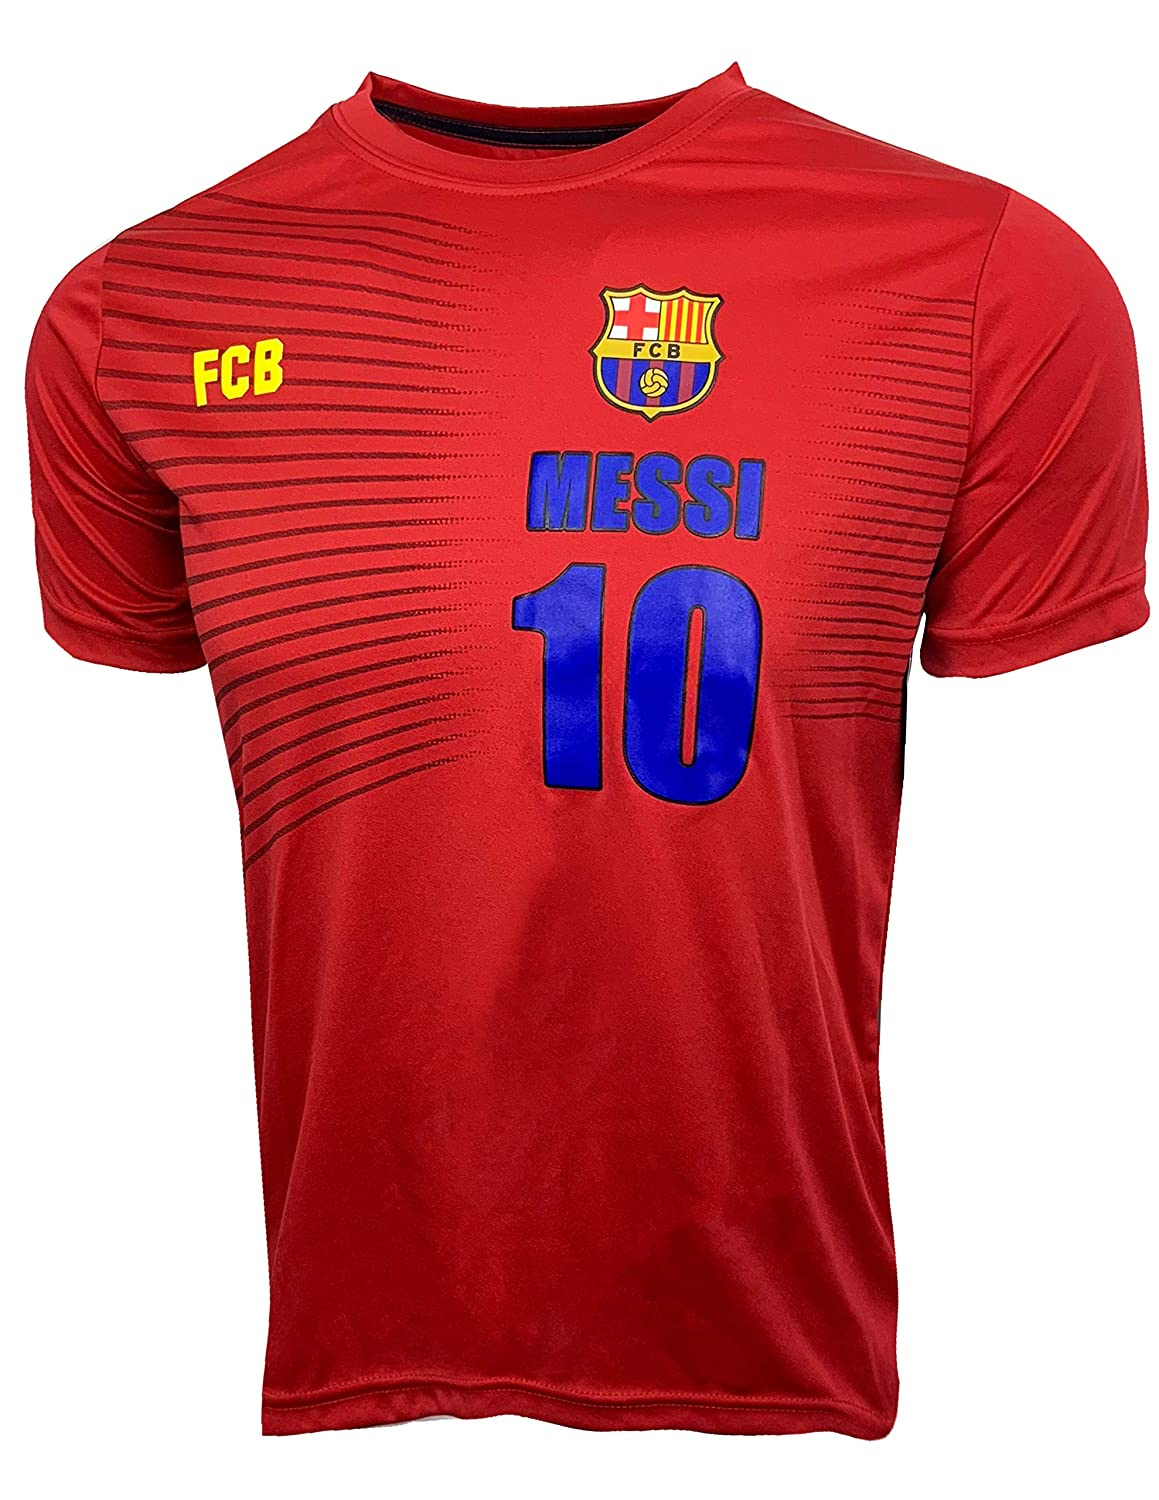 competitive price 3ac2a e2259 Barcelona Soccer Shirt Lionel Messi #10 for Kids,Futbol Jersey Kids T-Shirt